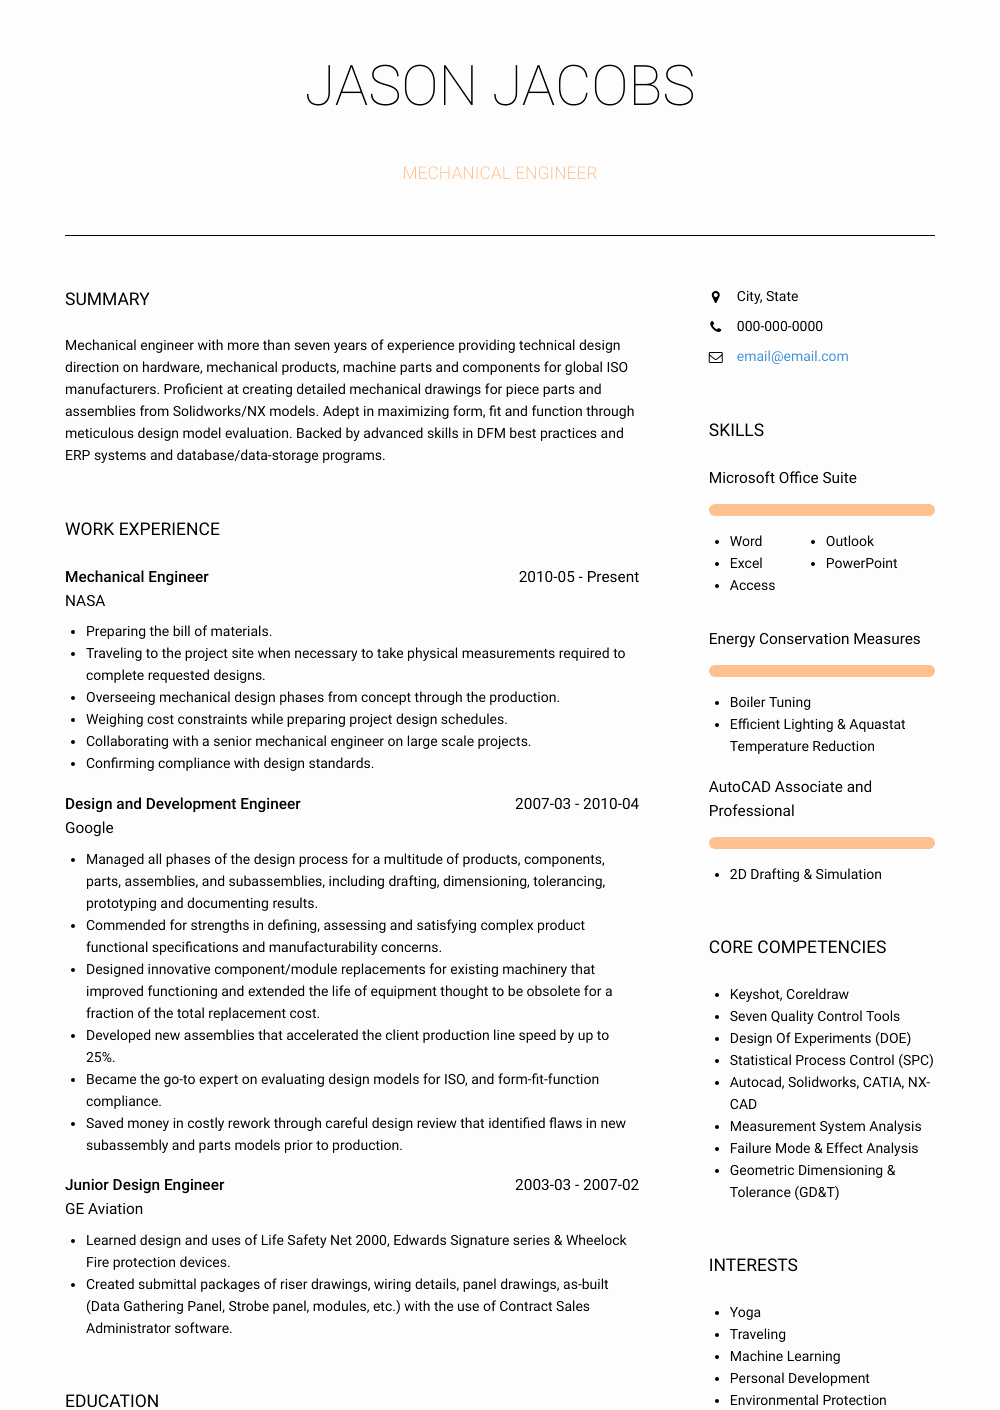 Mechanical Engineer Resume Sample Lovely Mechanical Design Engineer Resume Samples & Templates